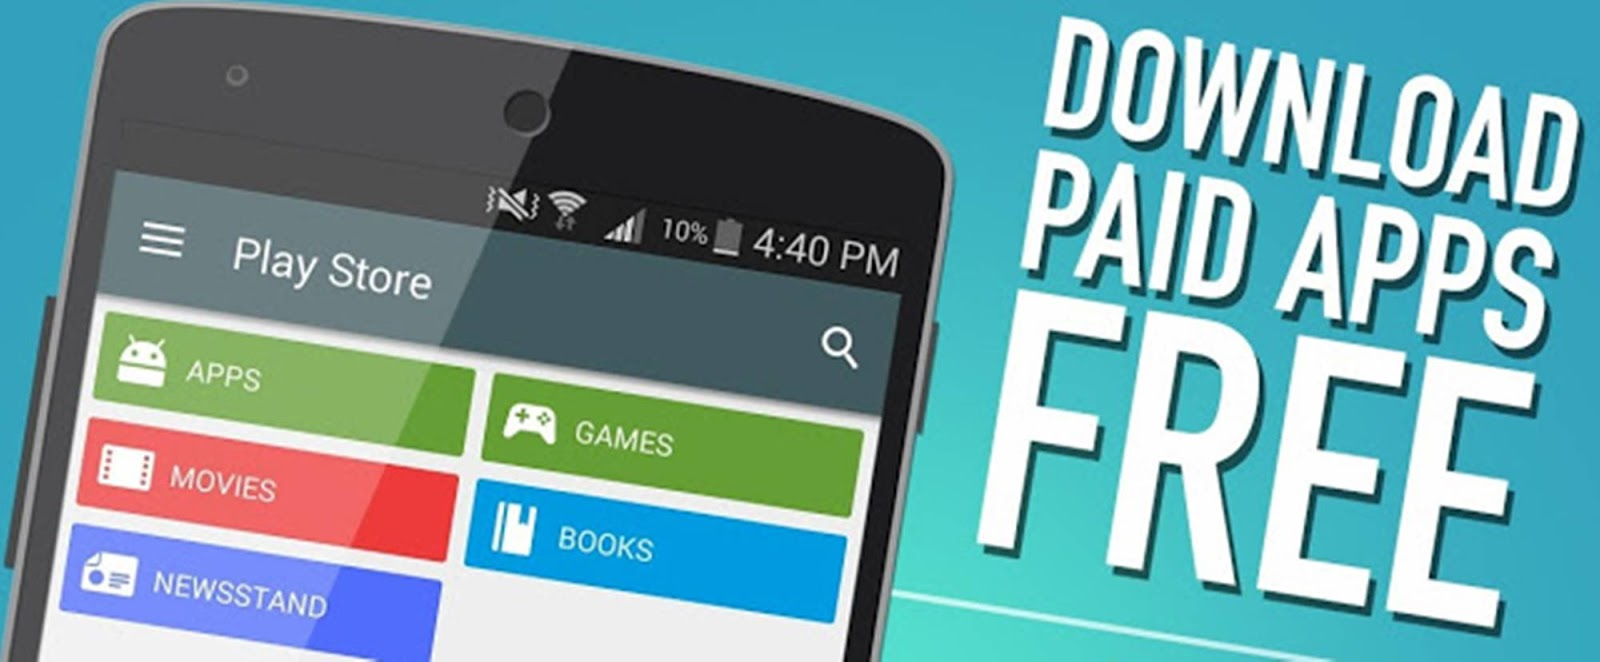 Friday Deals: Get 26 paid apps for free on the PlayStore